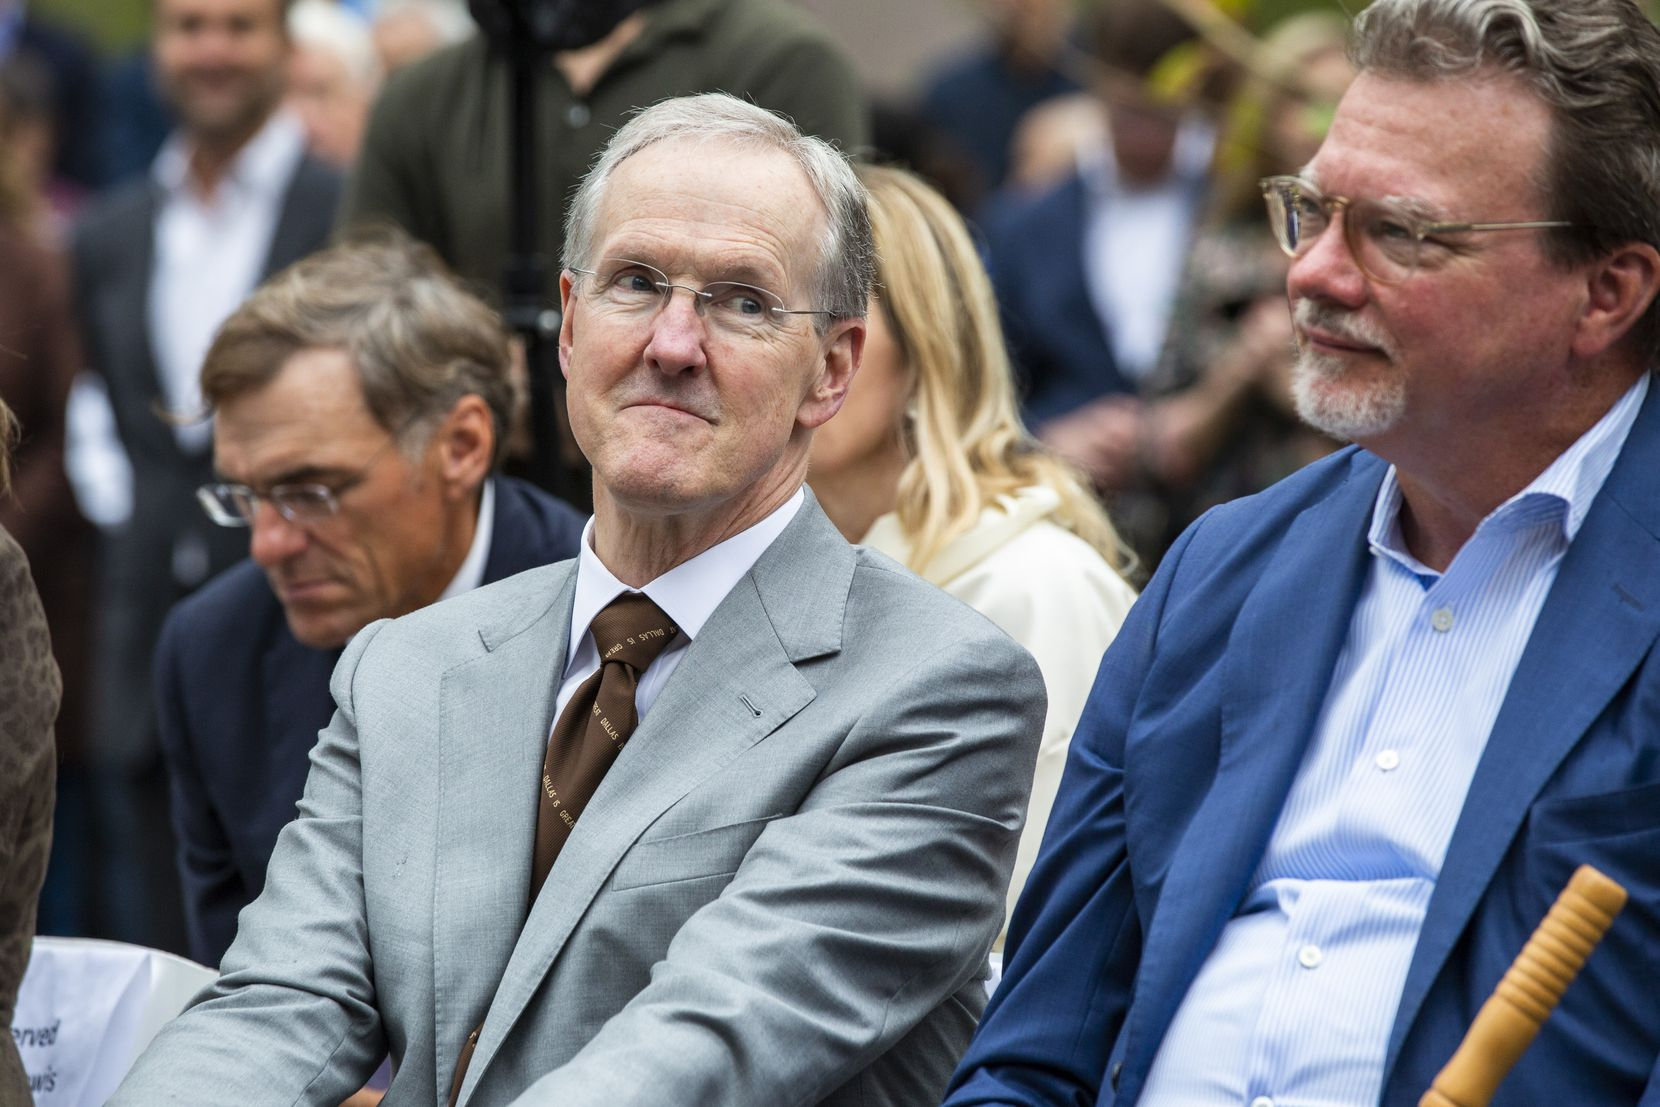 Robert W. Decherd, chairman of Parks for Downtown Dallas and CEO of A.H. Belo (left) and Dan Noble, HKS, Inc. president and CEO, attend the opening ceremony for Pacific Plaza in downtown Dallas on Monday, Oct. 14, 2019. The plaza is the first of four new green spaces that will open by the end of 2022 with help from the nonprofit, Parks for Downtown Dallas. (Lynda M. Gonzalez/The Dallas Morning News)